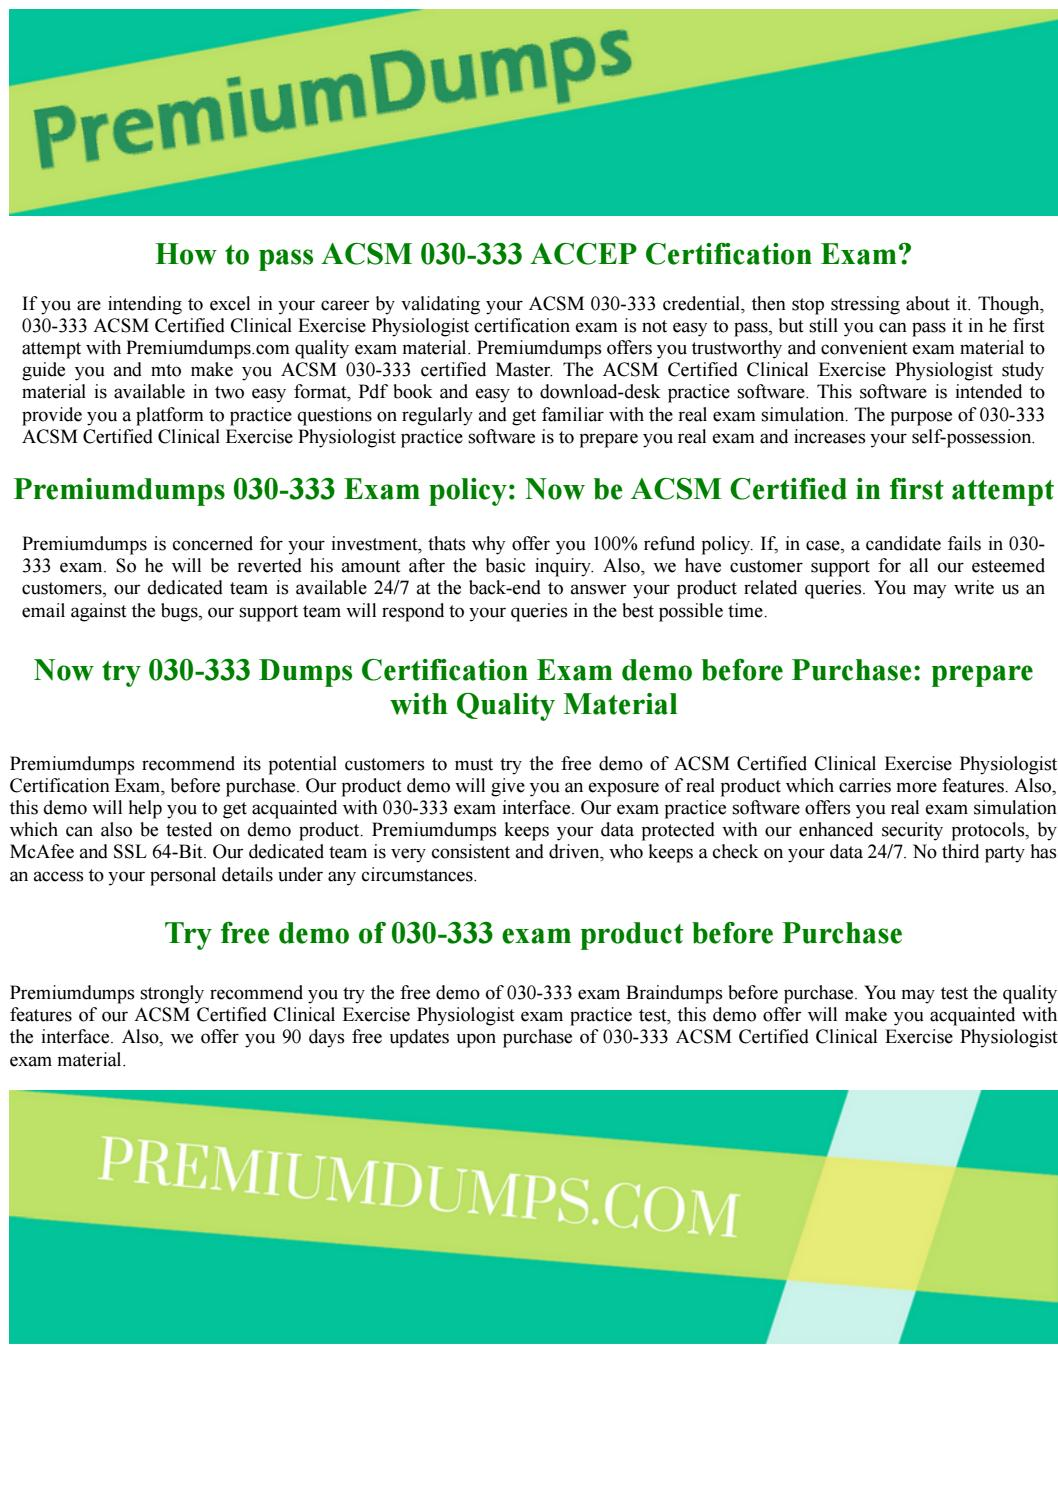 Acsm Certified Clinical Exercise Physiologist 030 333 Accep Exam